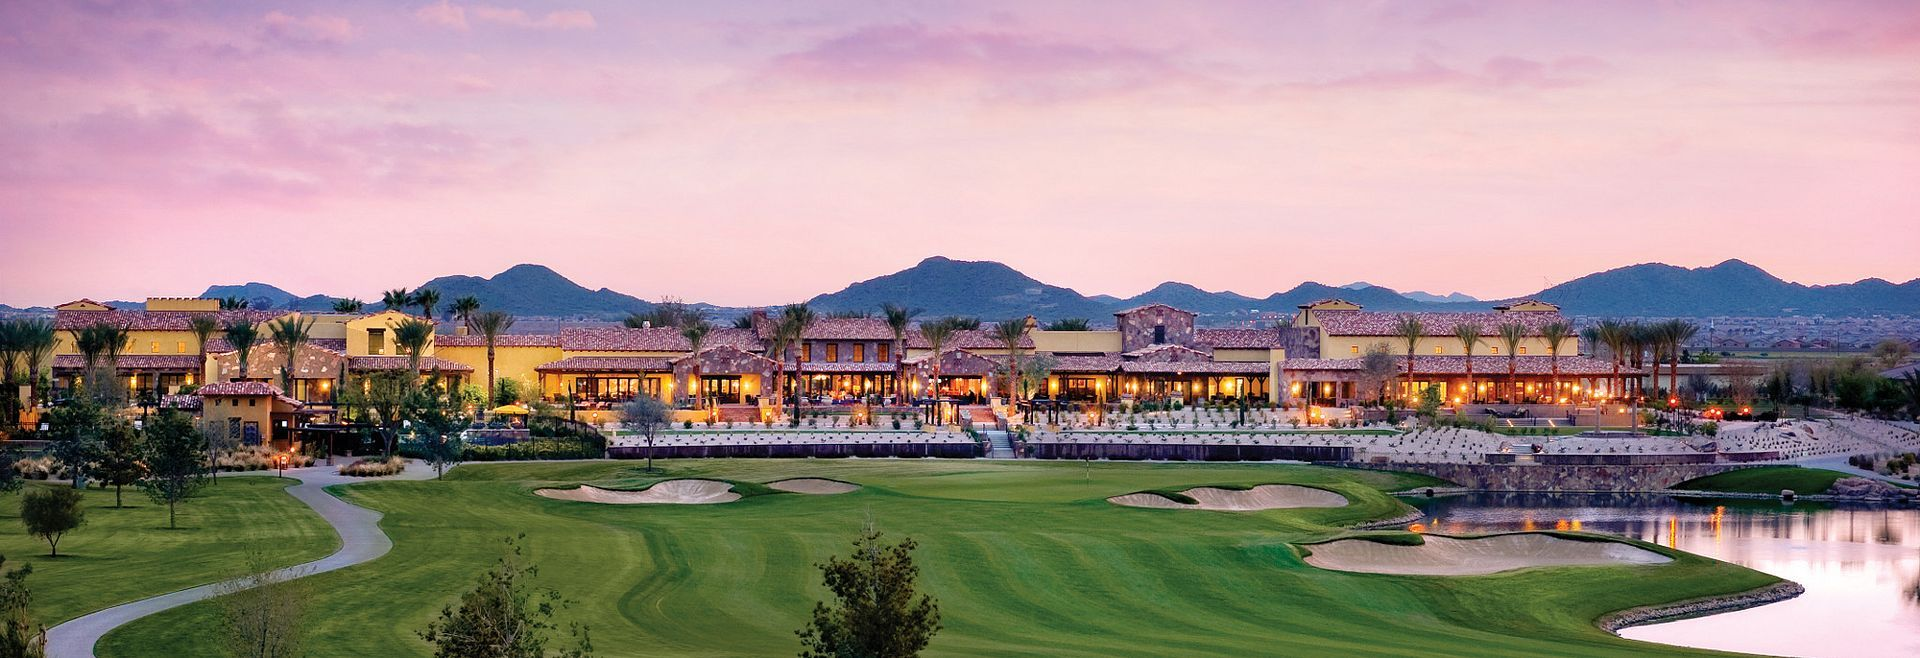 La Casa Club:Resort Club at Encanterra